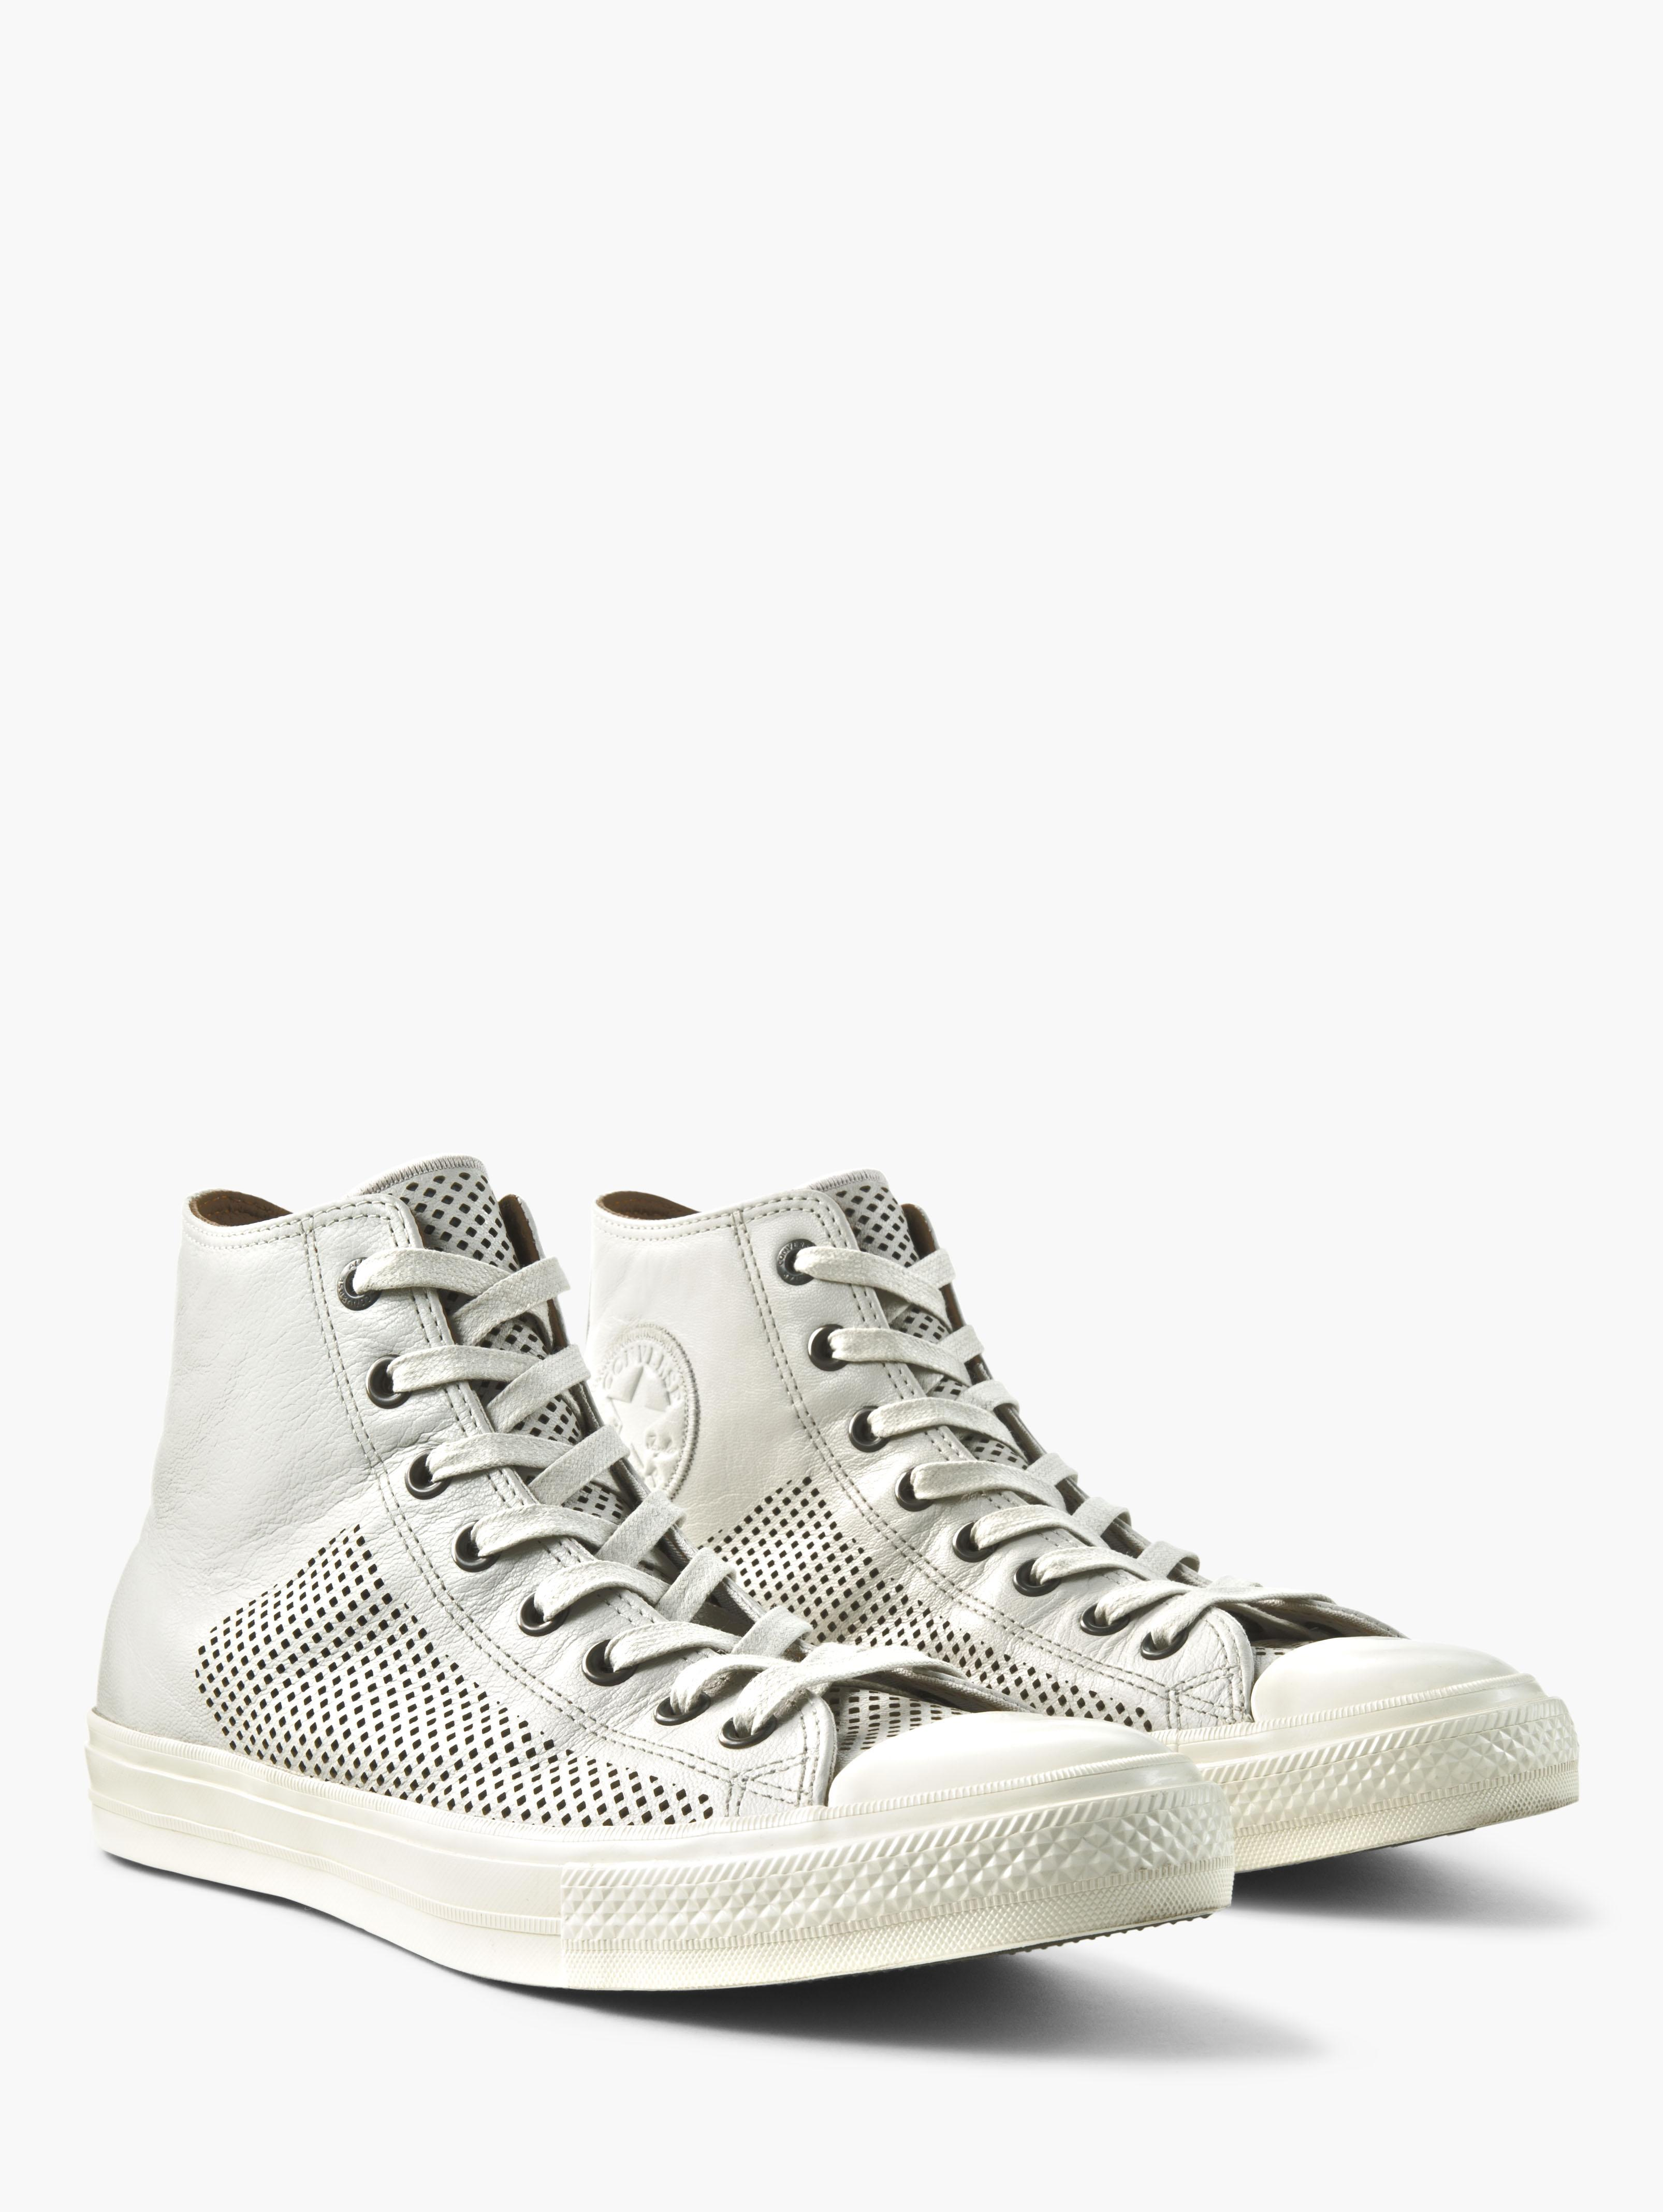 Chuck II Perforated Leather High Top